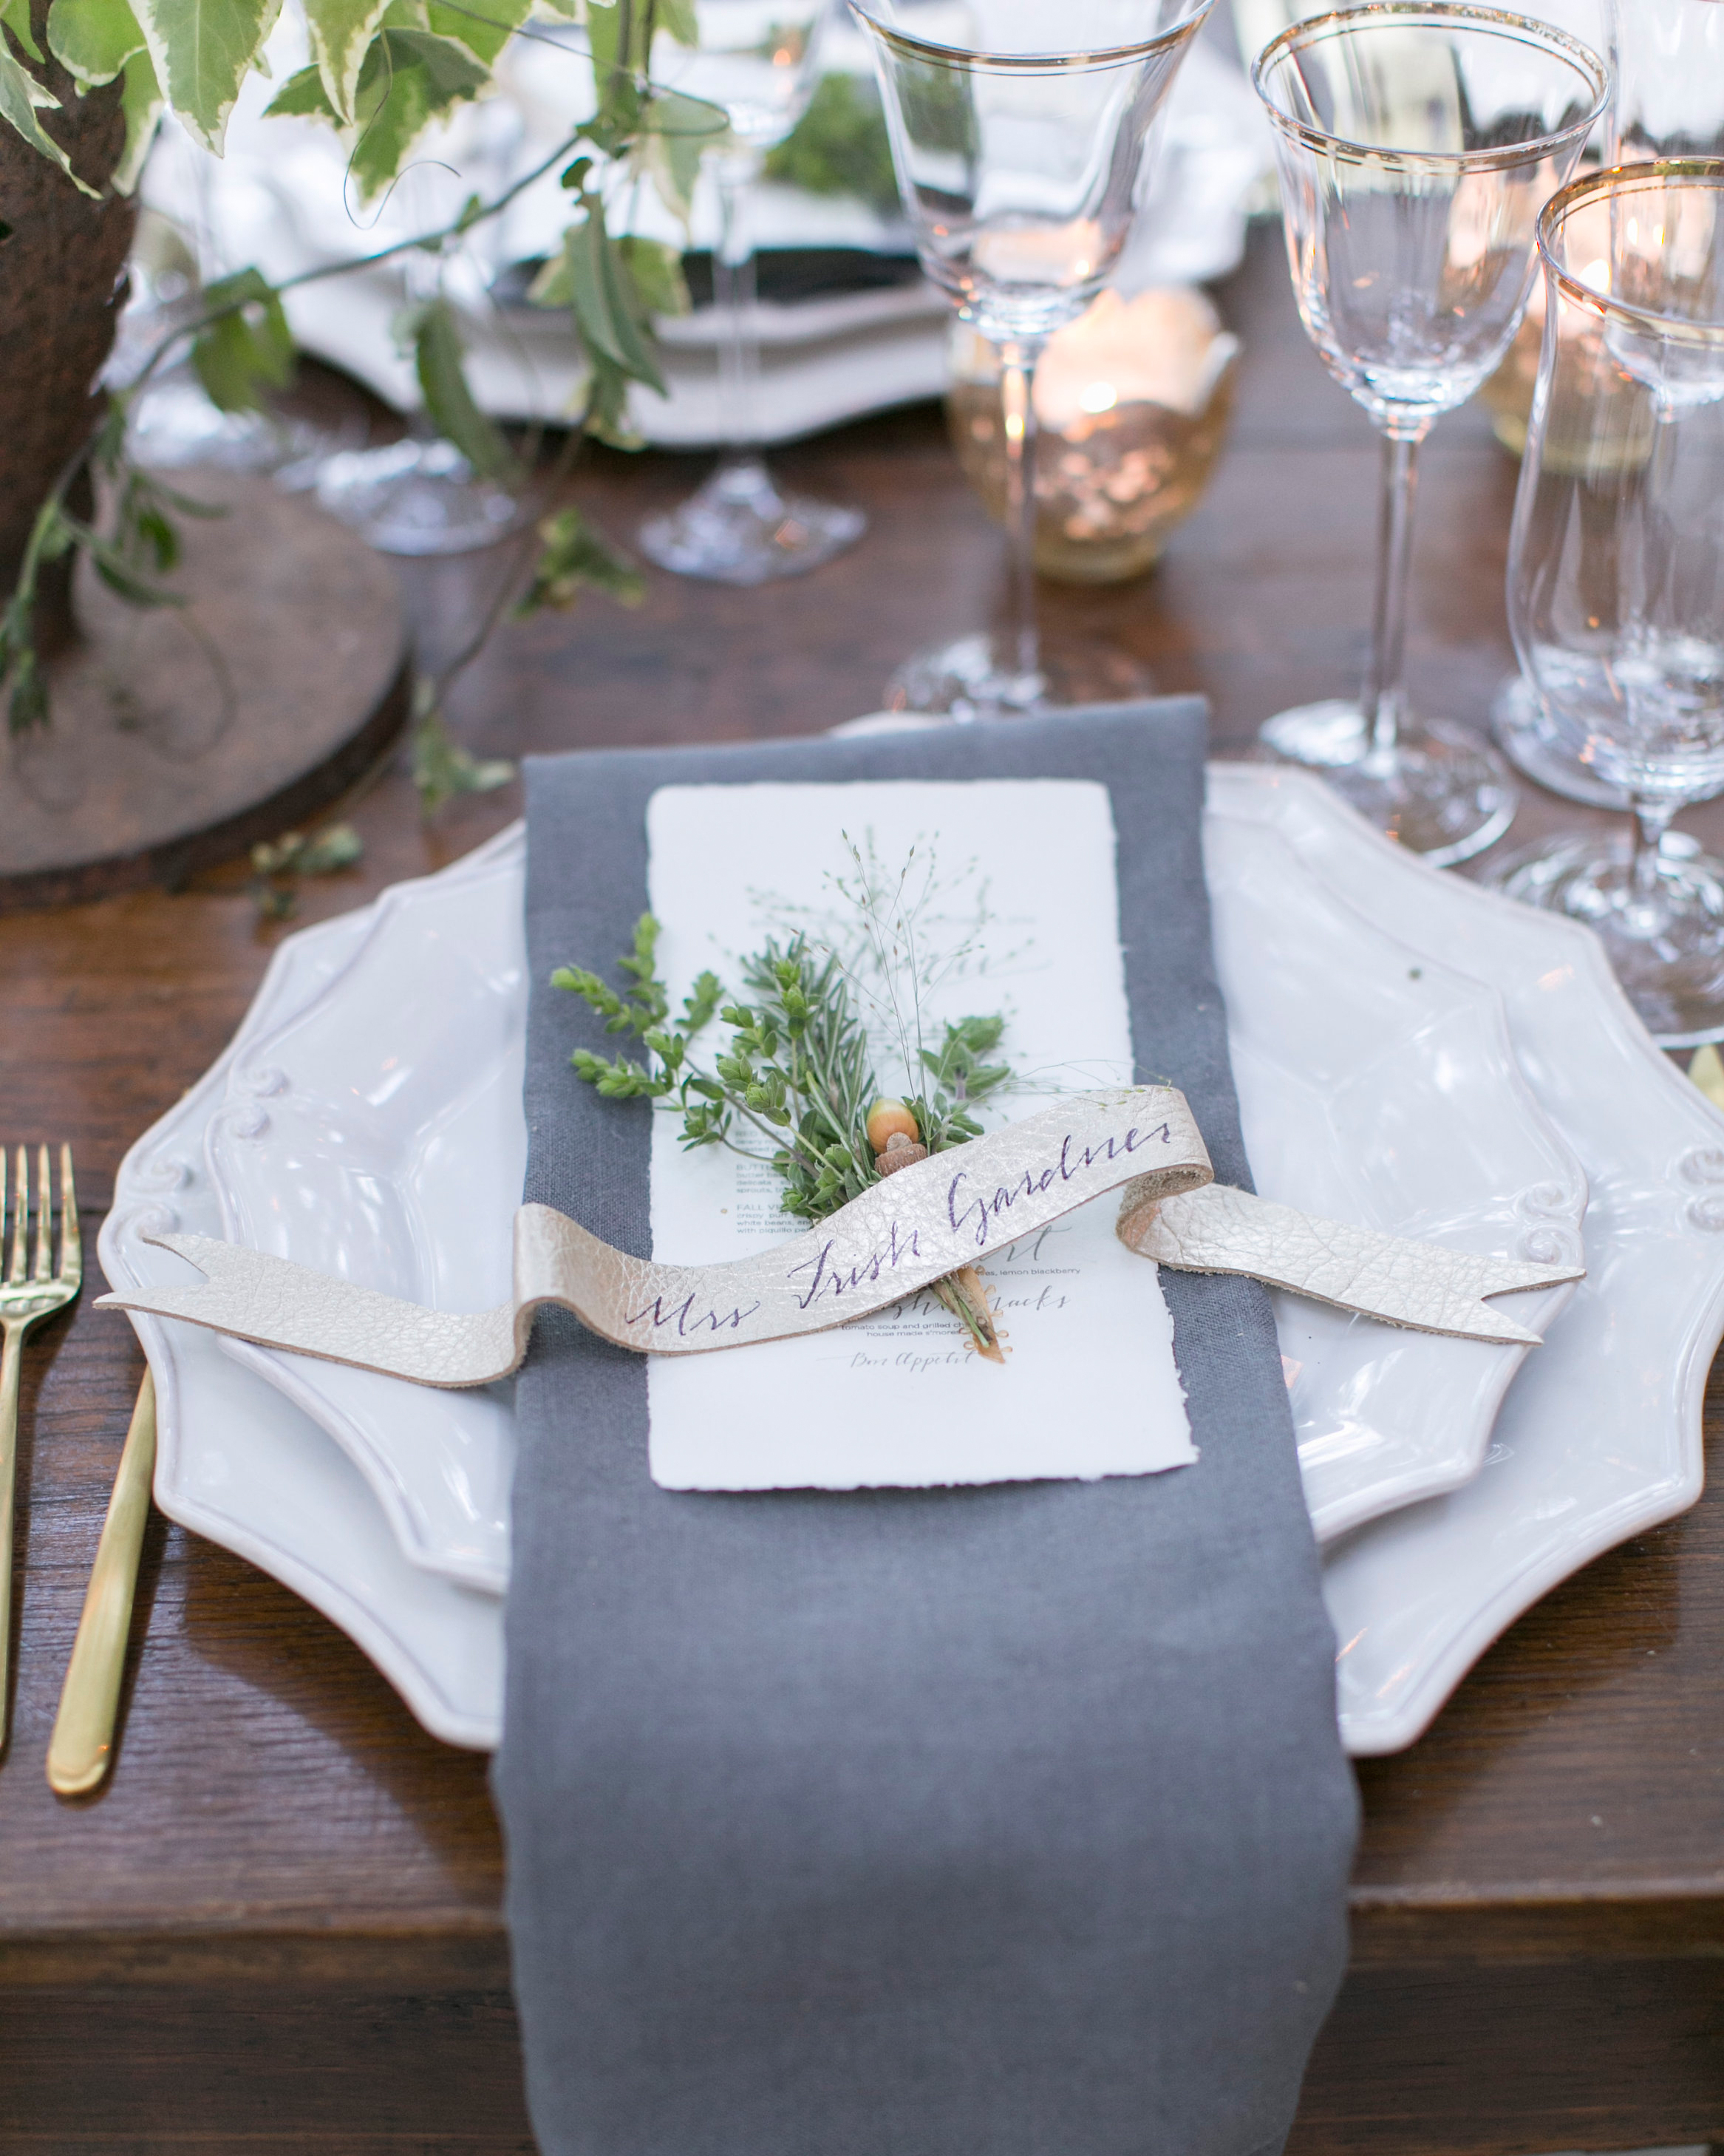 briana-adam-wedding-placesetting-0966-s112471-1215.jpg